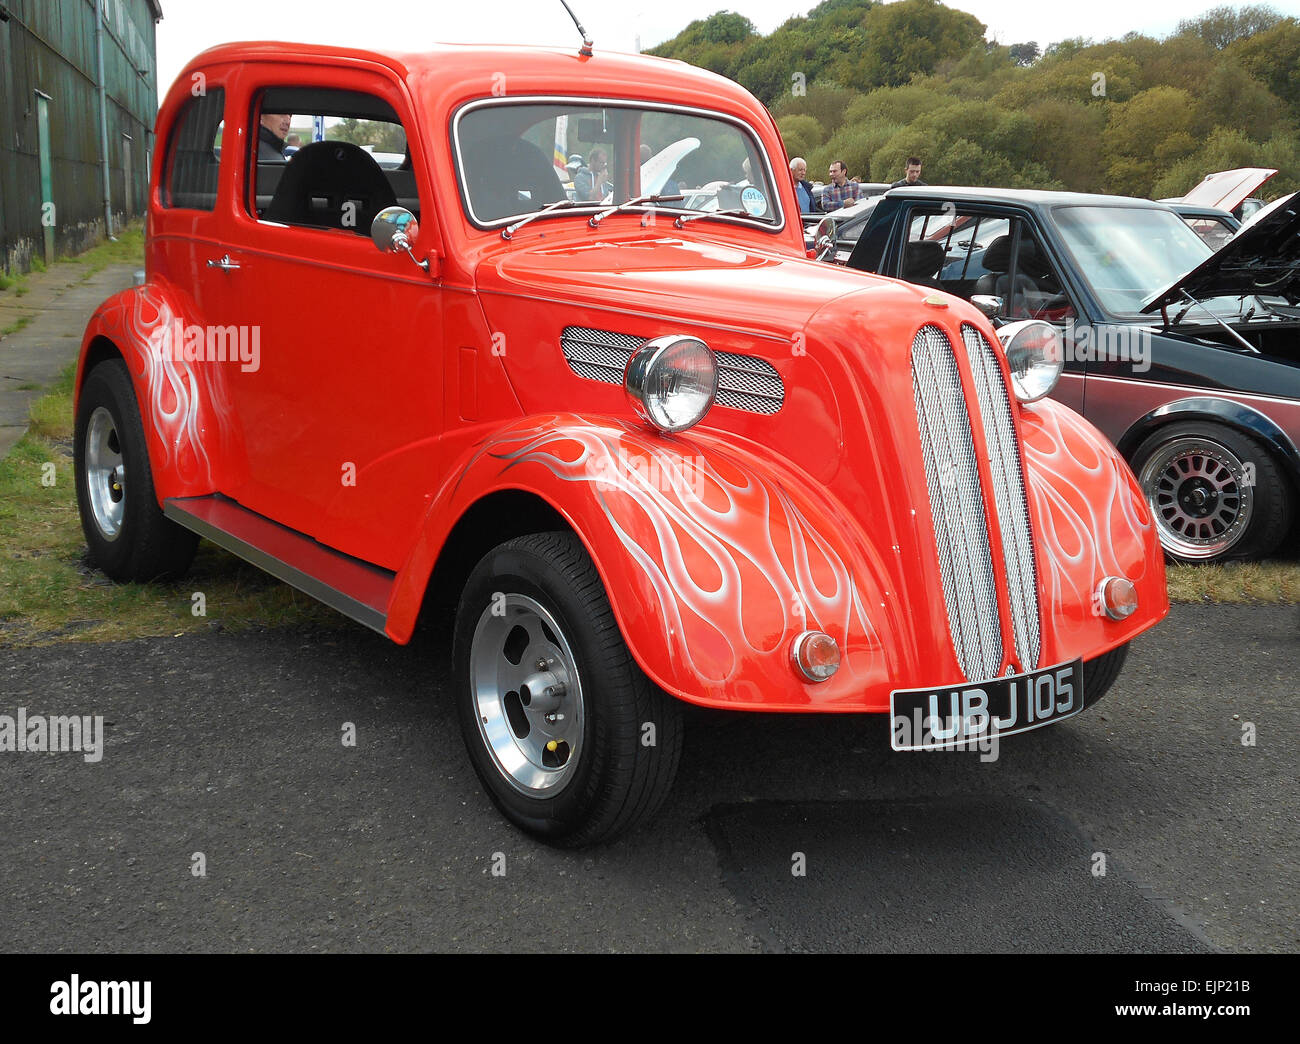 ford anglia dash with Stock Photo Ford Popular Hot Rod 80389831 on 48 Ford Anglia Thames For Sale together with Stock Photo Ford Popular Hot Rod 80389831 besides File 1971 Ford Escort Mk I Van  12428161524 likewise Rare Ford Escort Sold 3 000 1968 Fetches 65 000 Today Thanks Painstaking Restoration Work moreover 127 Wiring Diagram Model C.